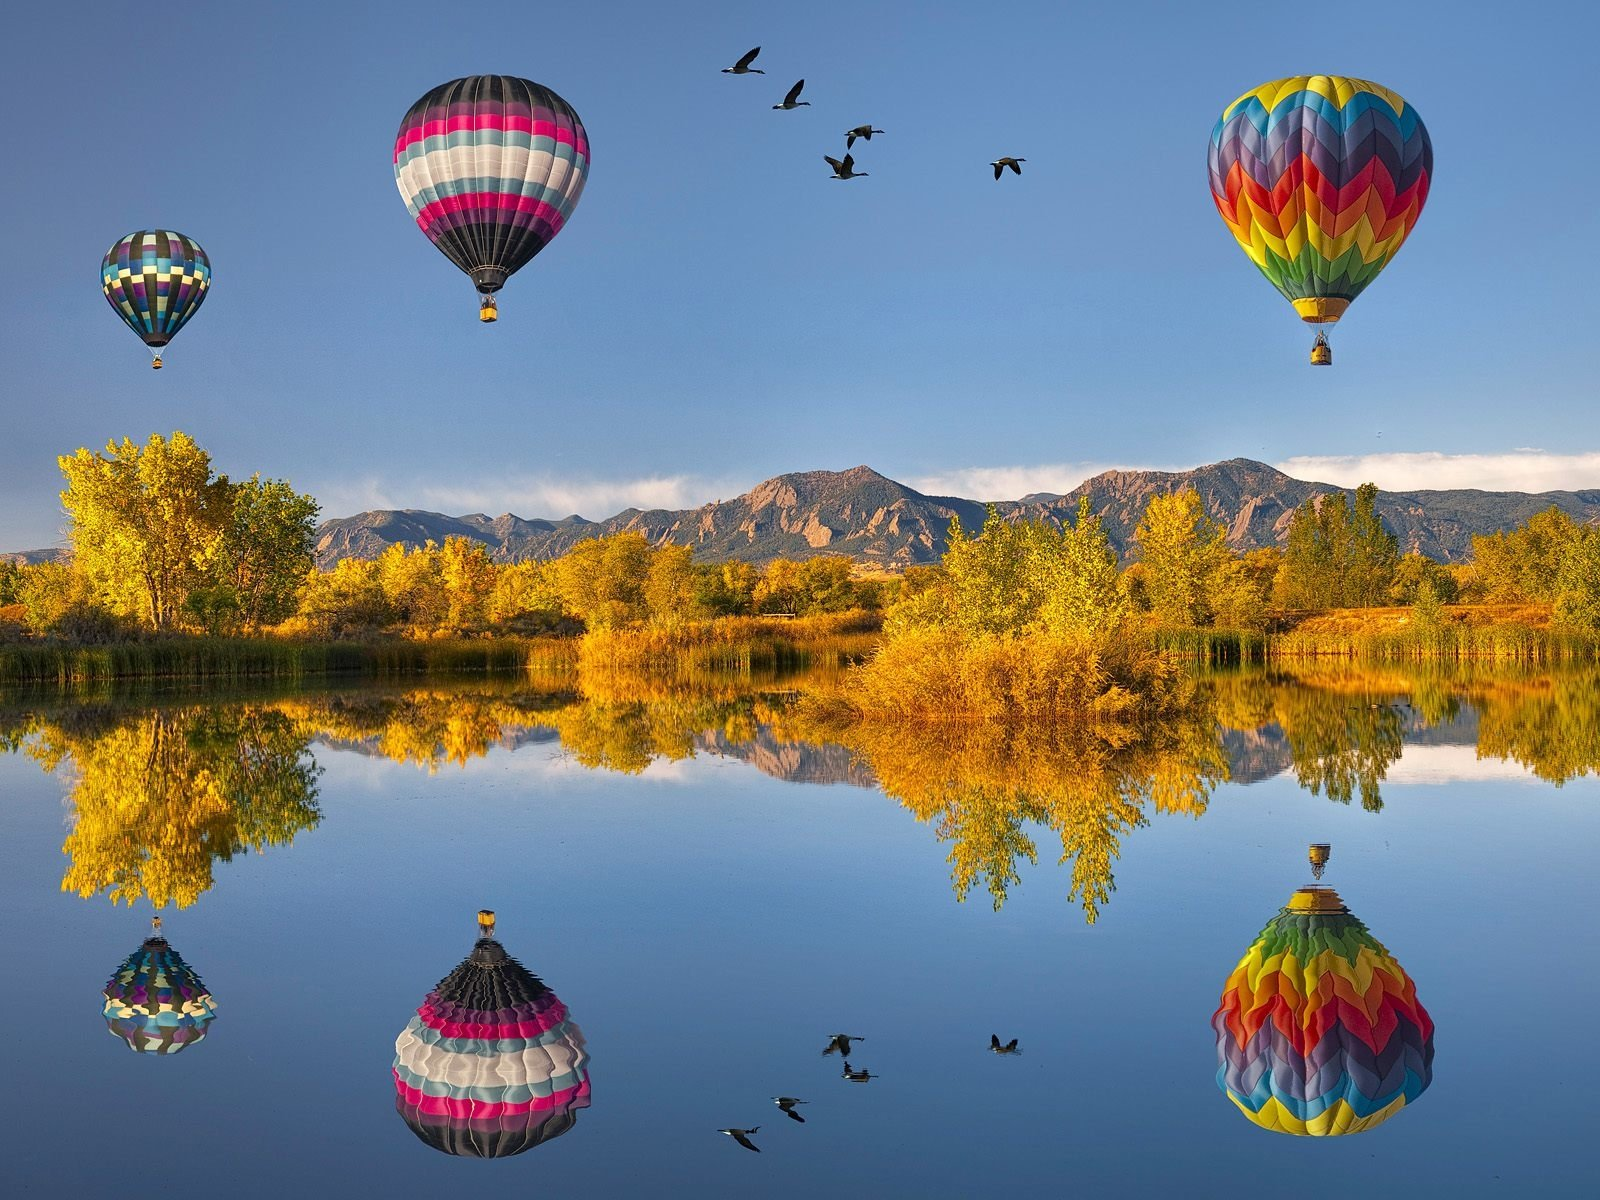 Vehicles - Hot Air Balloon  Balloon Reflection Wallpaper